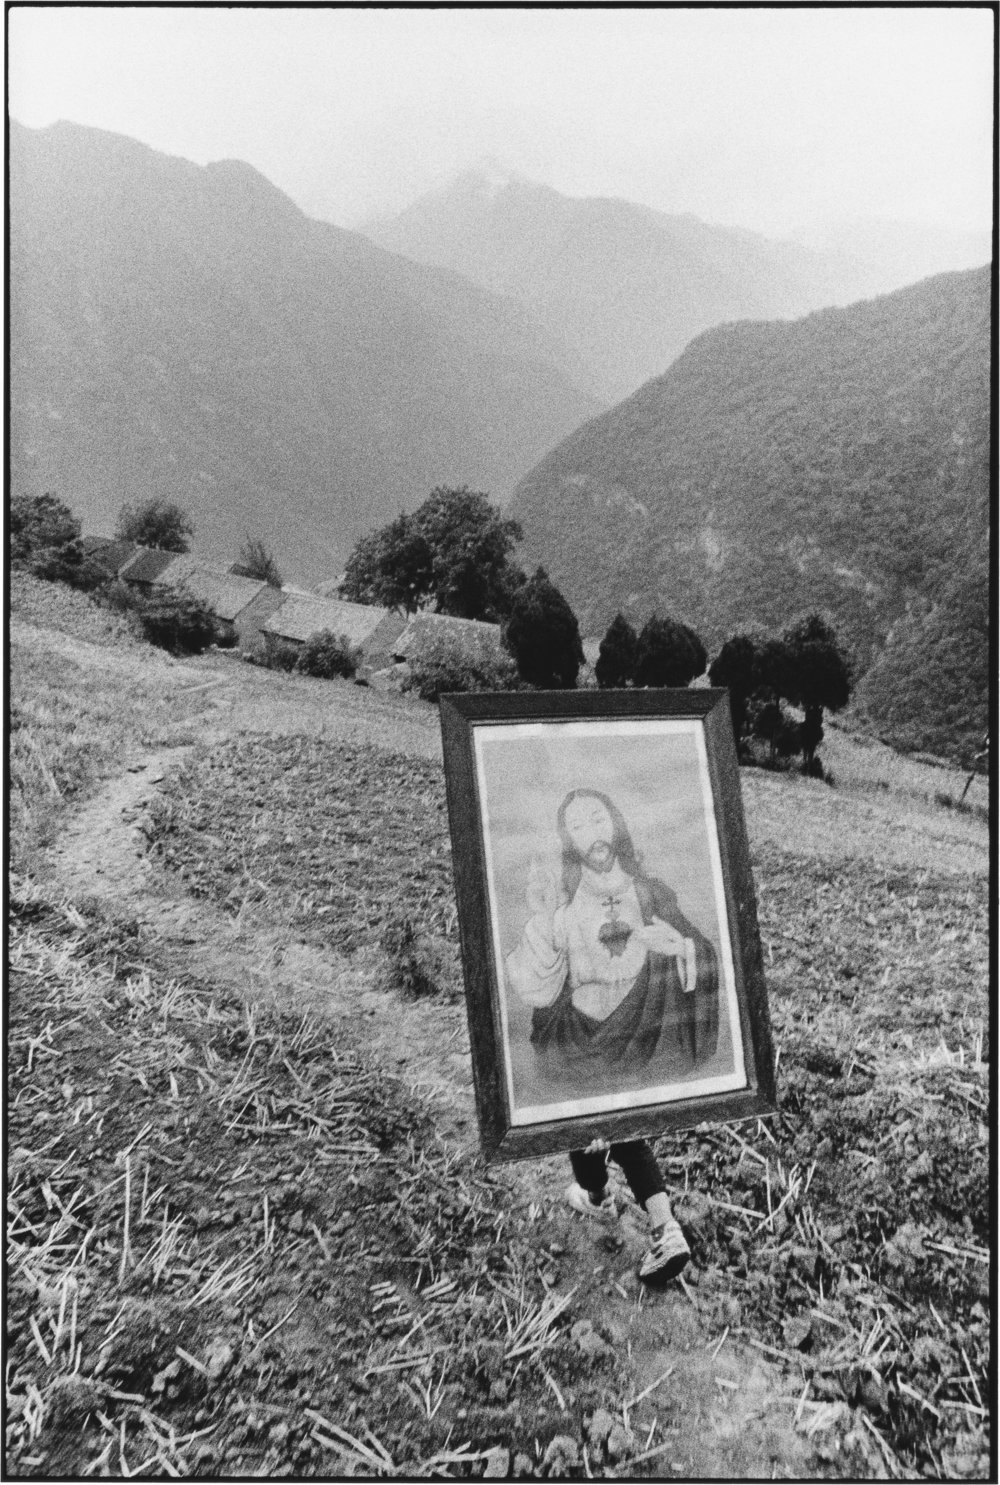 A Youth Carrying an Image of Jesus, Shaanxi, China